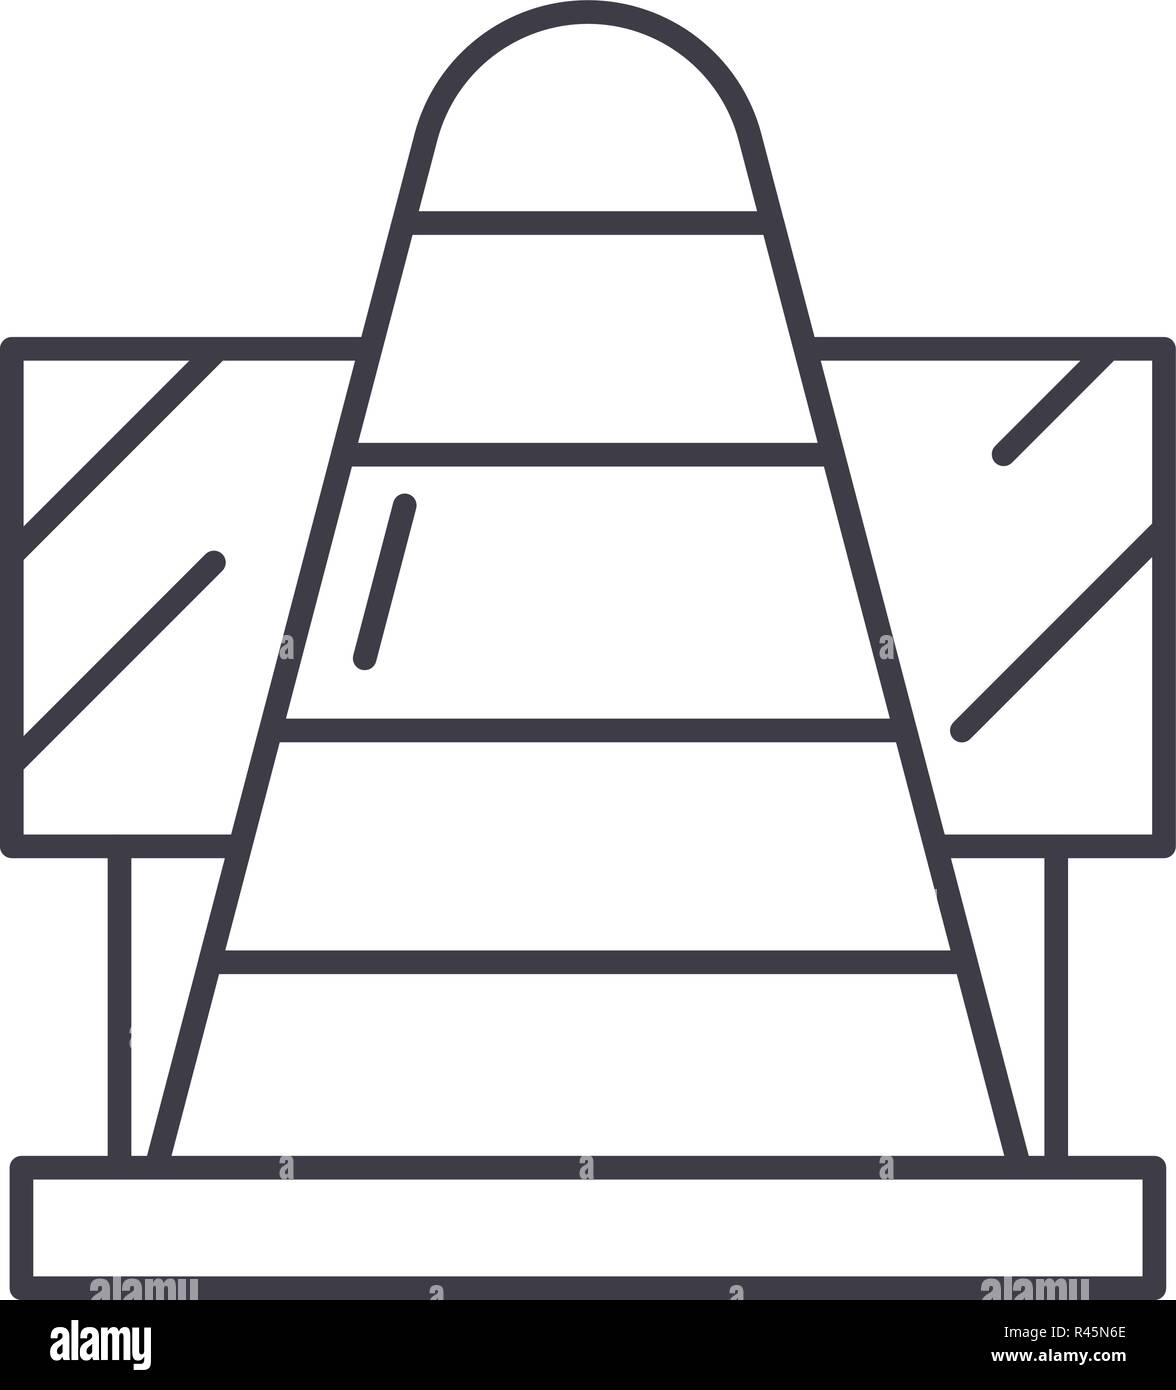 Work in progress line icon concept. Work in progress vector linear illustration, symbol, sign - Stock Vector